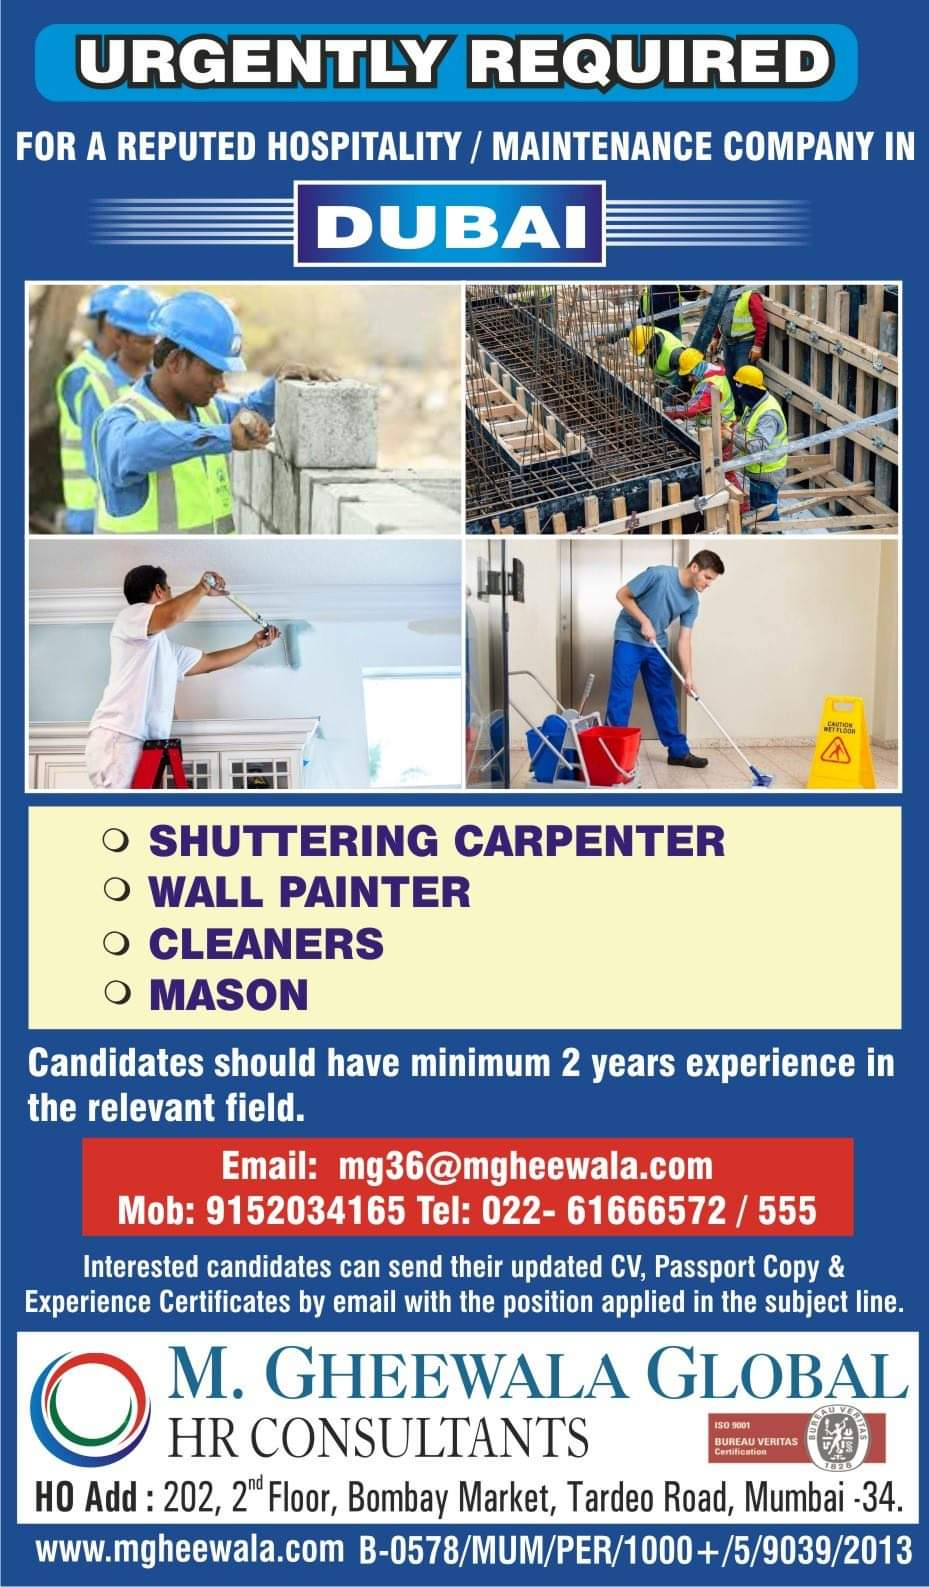 URGENTLY REQUIRED FOR HOSPITILATY/ MAINTAINANCE COMPANY IN DUBAI